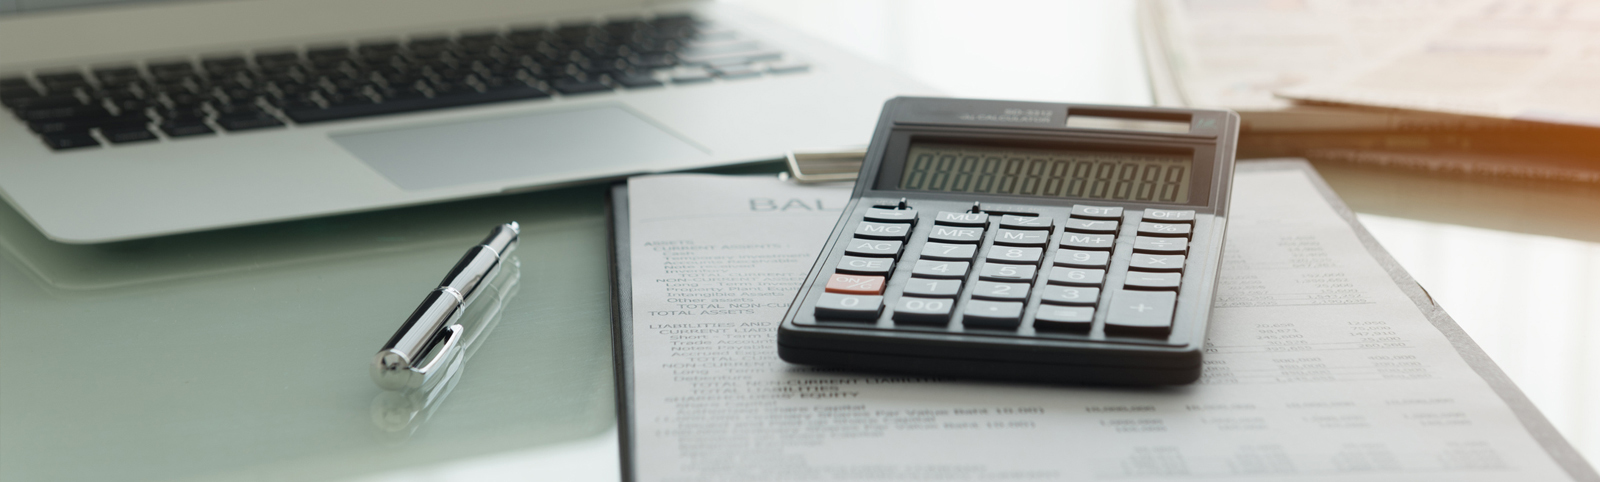 Online Price-Per-BOL Calculator Equips Finance & Accounting Teams